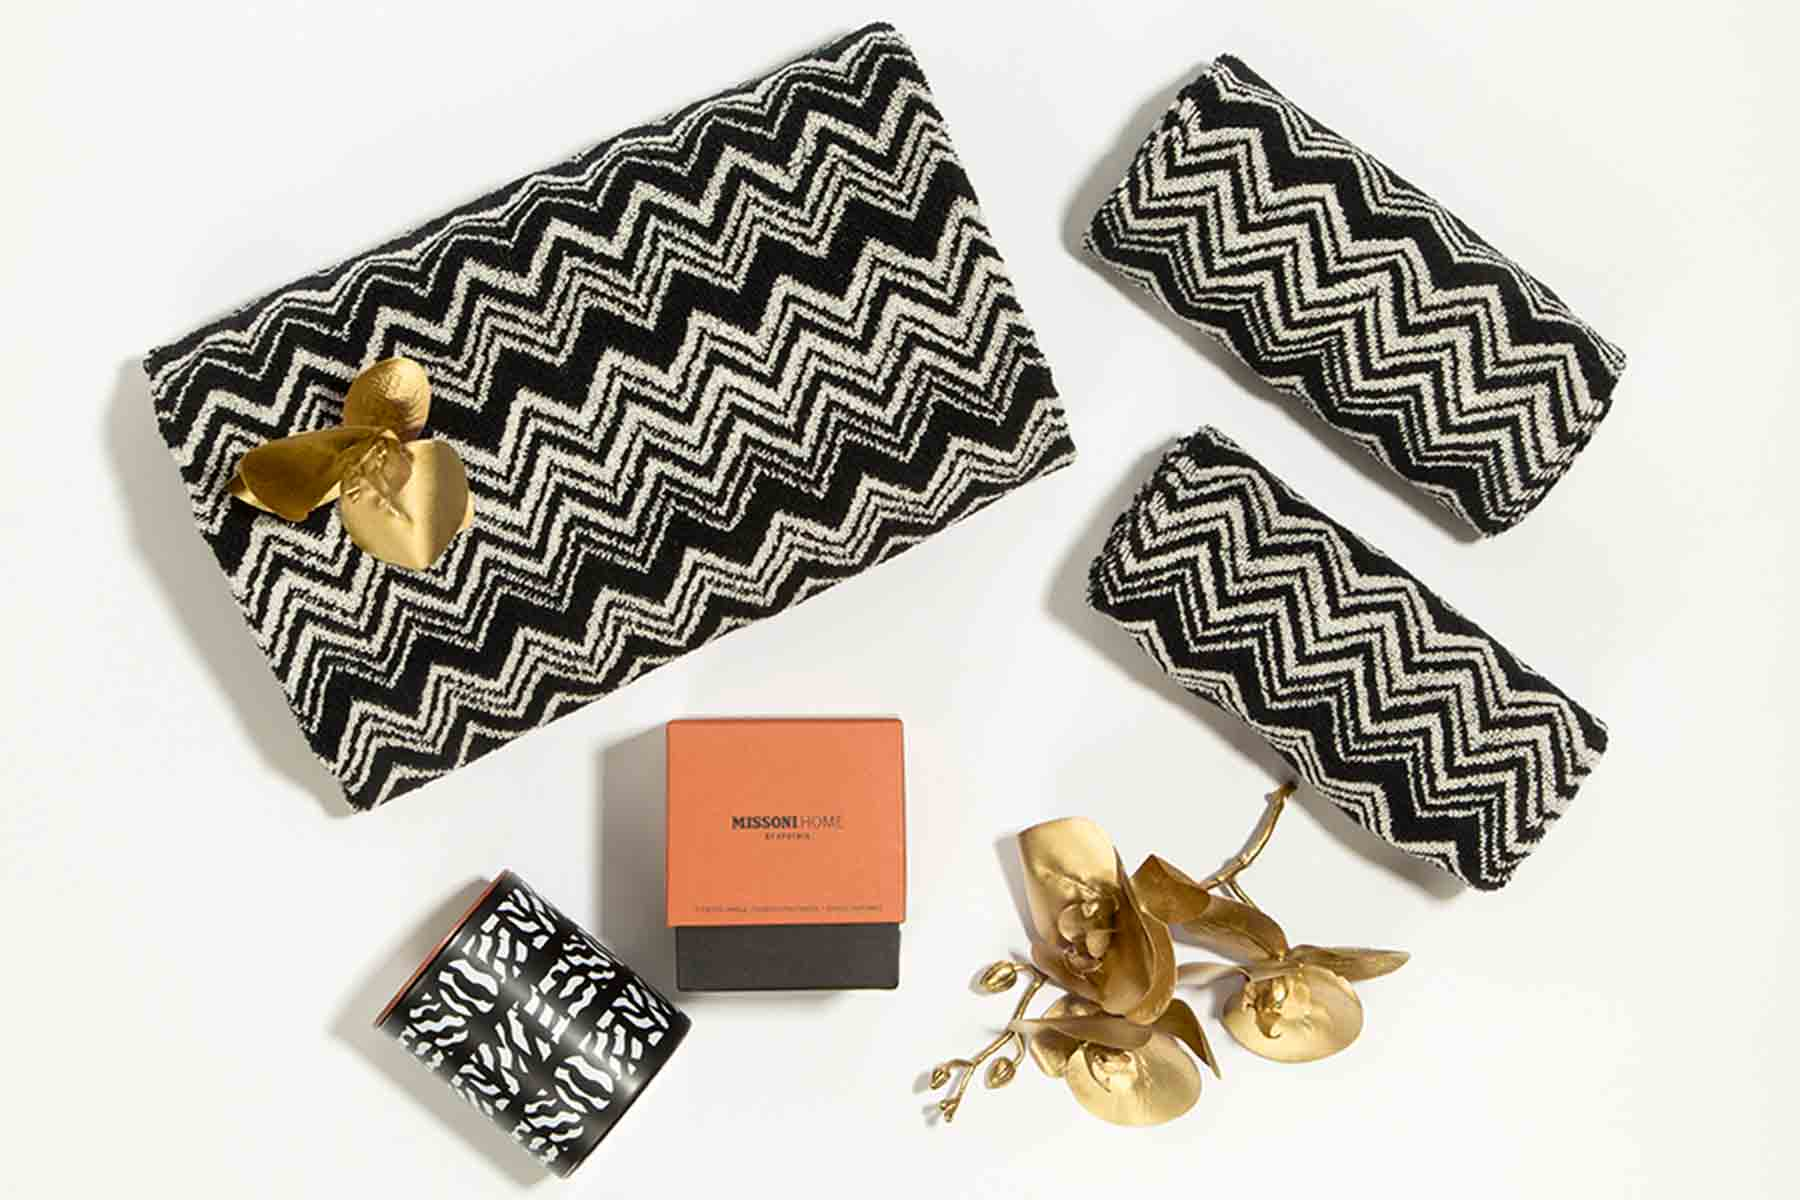 The Missoni Home Collection